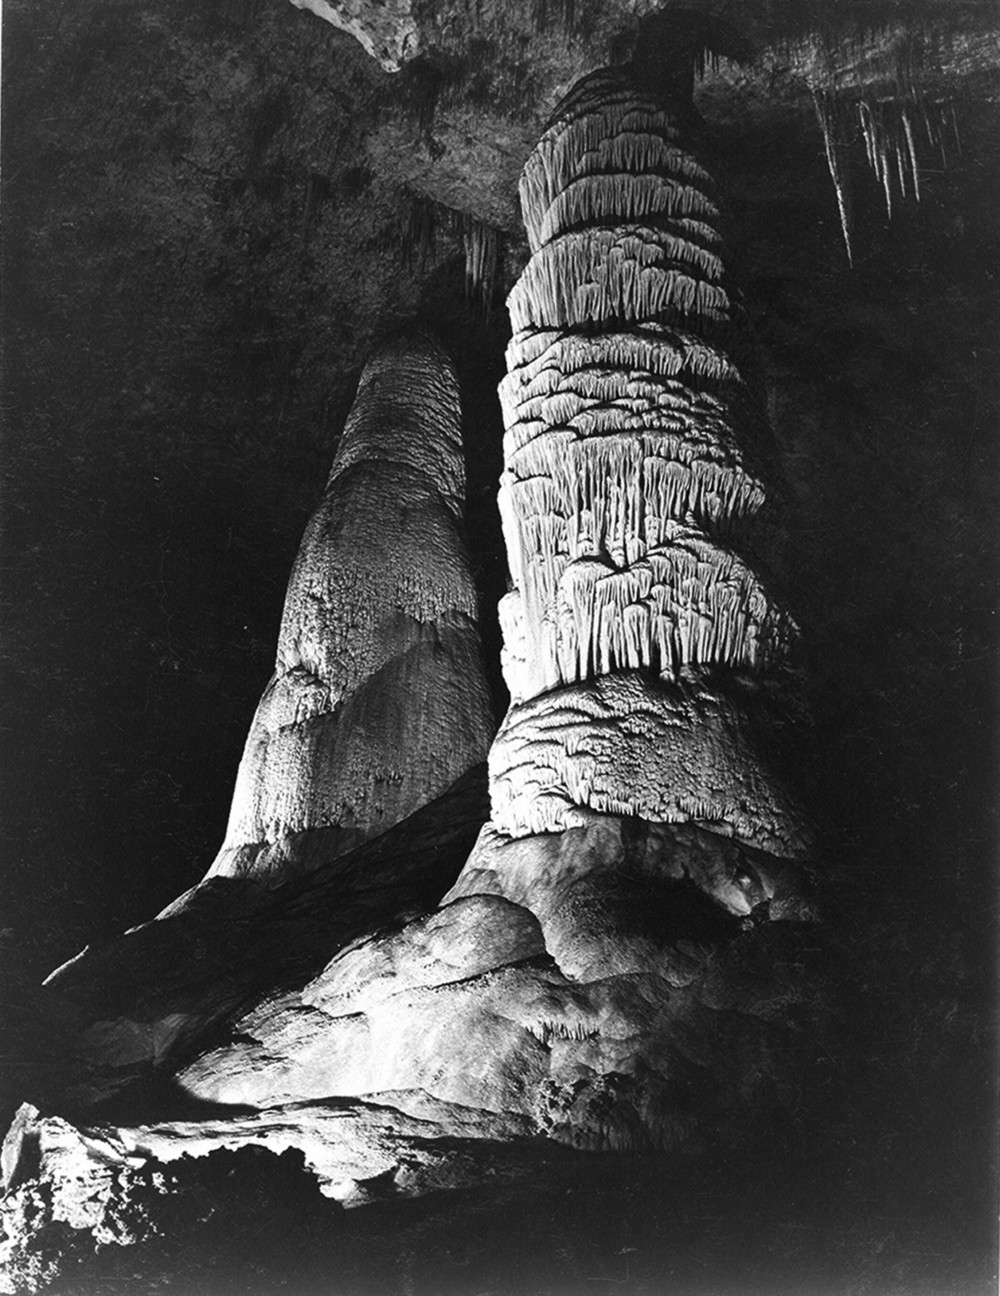 Formations in Carlsbad photographed by Ansel Adams, 1930s-1940s